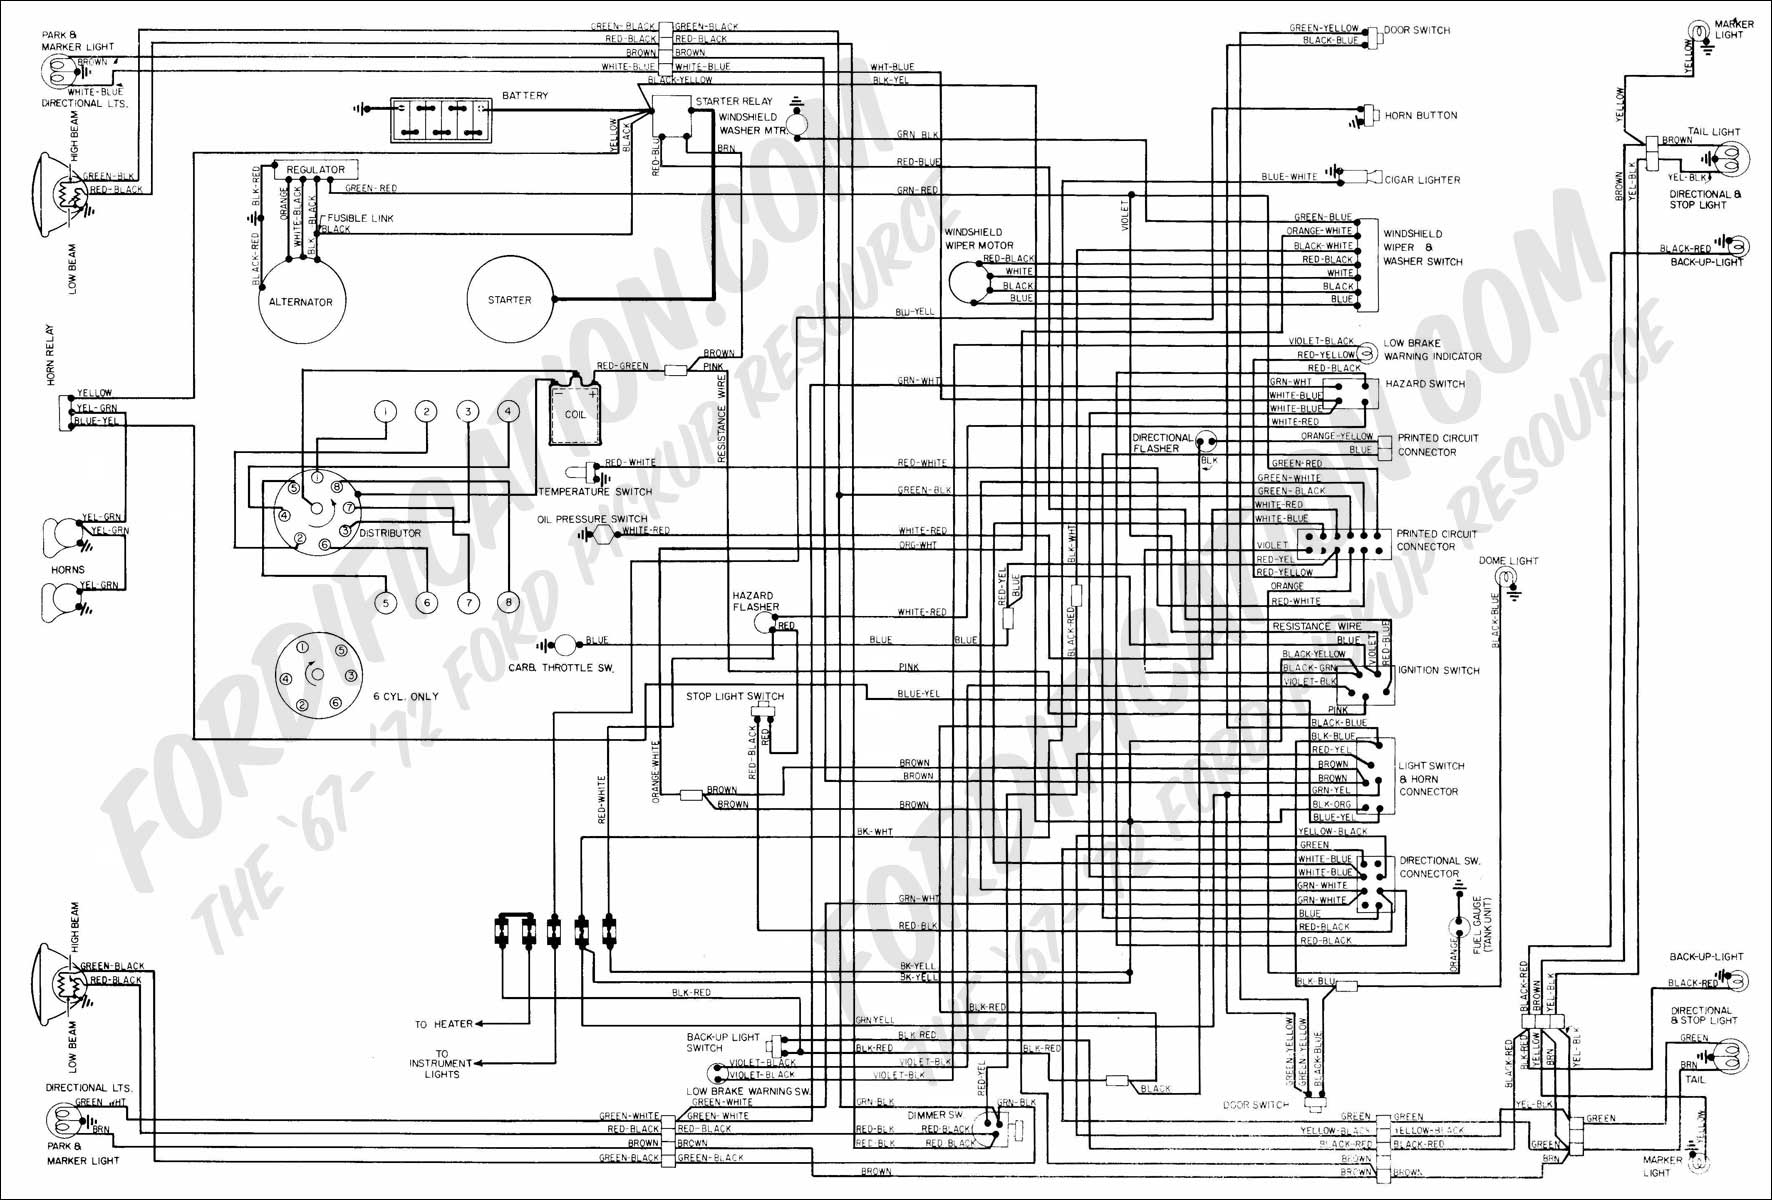 wiring diagram for a 6 0 ford sel with 972665 Brake Lights Rear Hazard Lights Not Working on 6 5 Sel Engine Wiring Harness moreover 2015 Ford F550 Upfitter Wiring Diagram furthermore Wiring Diagram For A 1992 Mercedes 300e also Lb7 Fuel Injector Wiring Diagram additionally 7 3 Sel Block Heater Location.